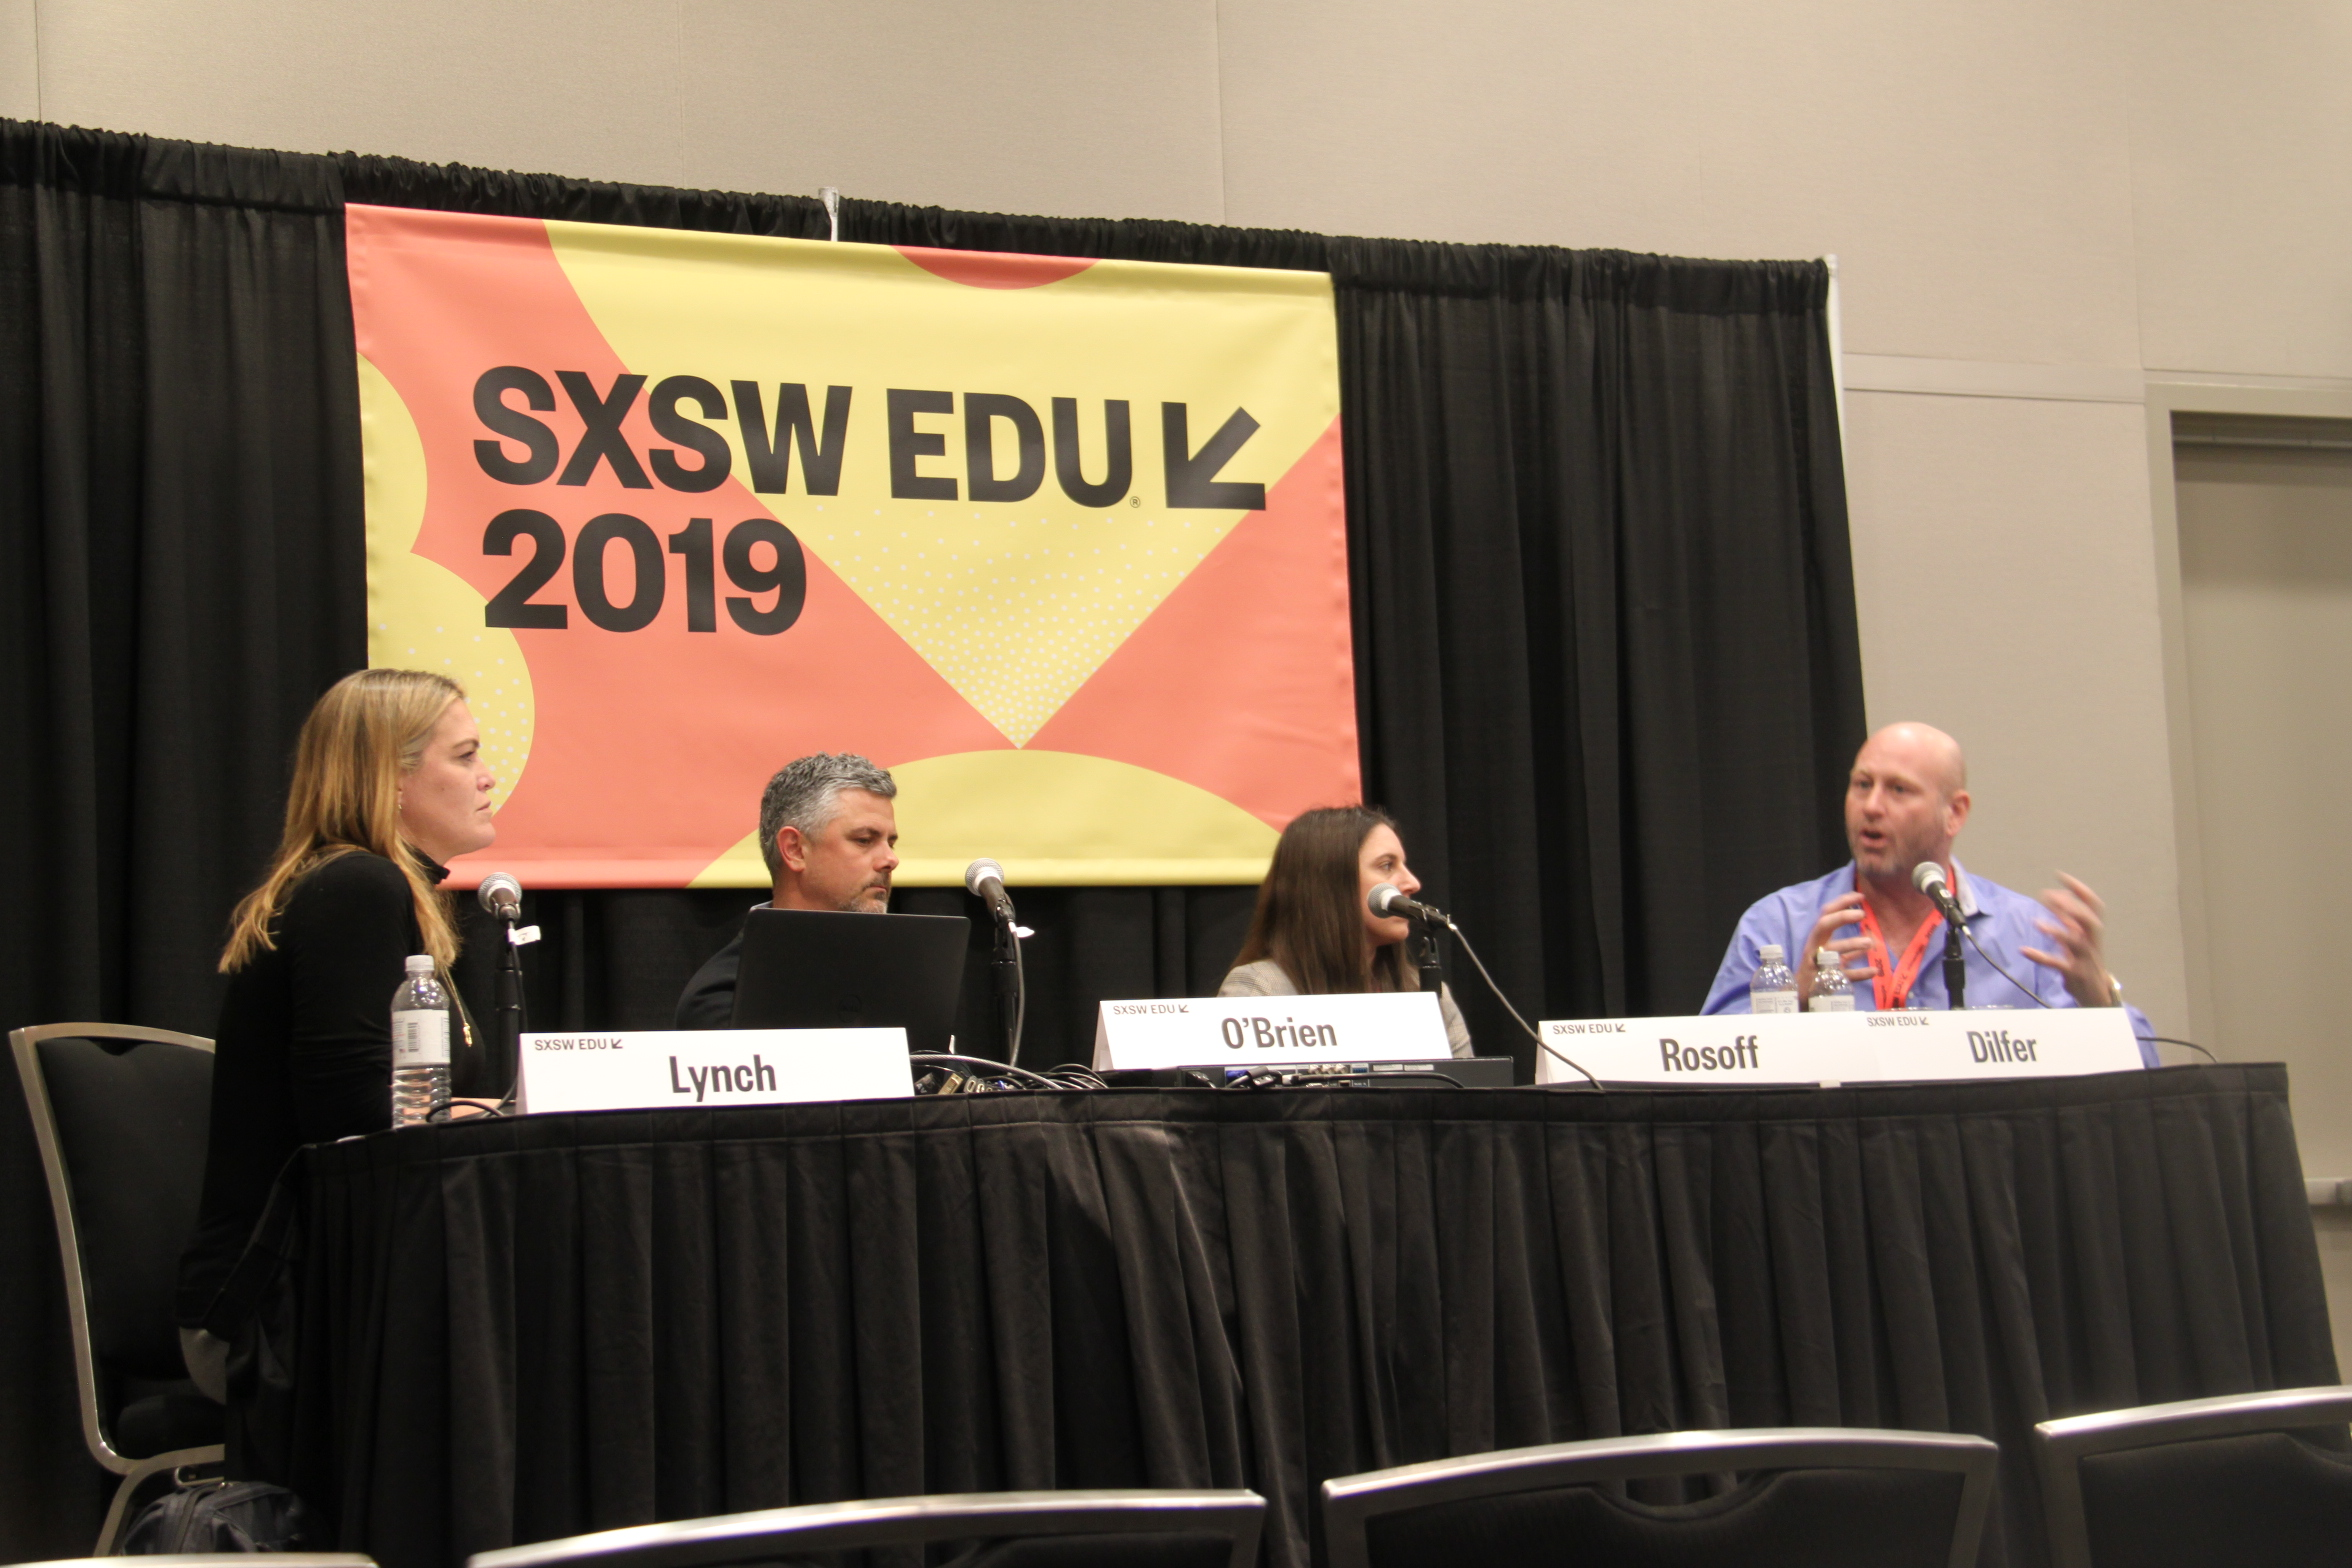 WorkingNation's Joan Lynch leads SXSW EDU panel discussion, How Data Analytics Is Changing Sports, with panelists Brett O'Brien, Caryn Rosoff and Trent Dilfer.